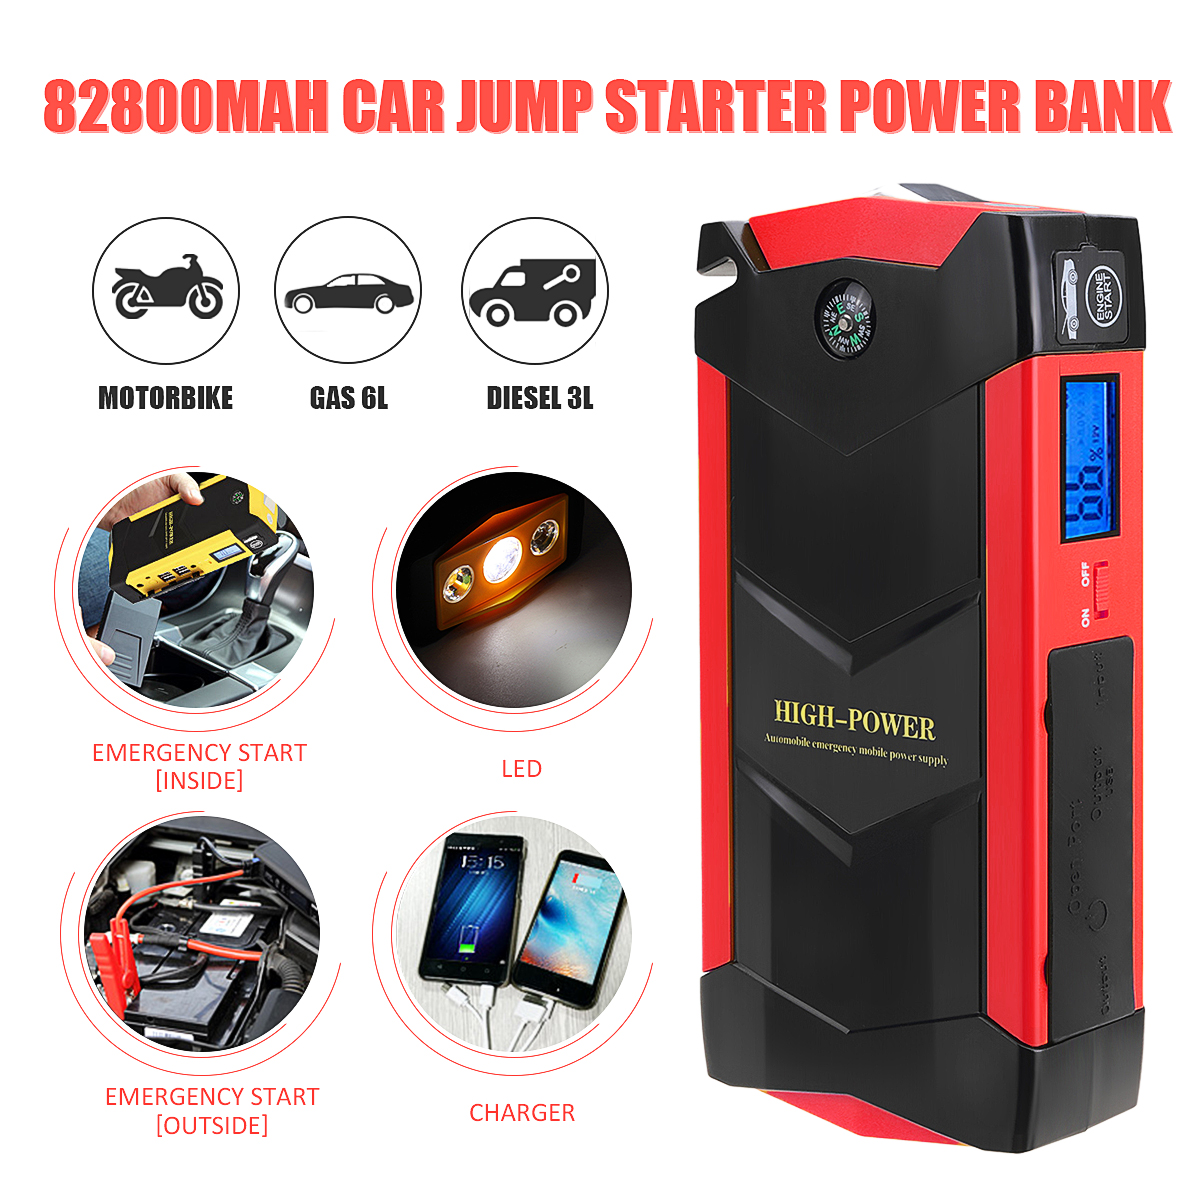 High Power 12V 82800mAh 4USB Car font b Battery b font Charger Starting Car Jump Starter